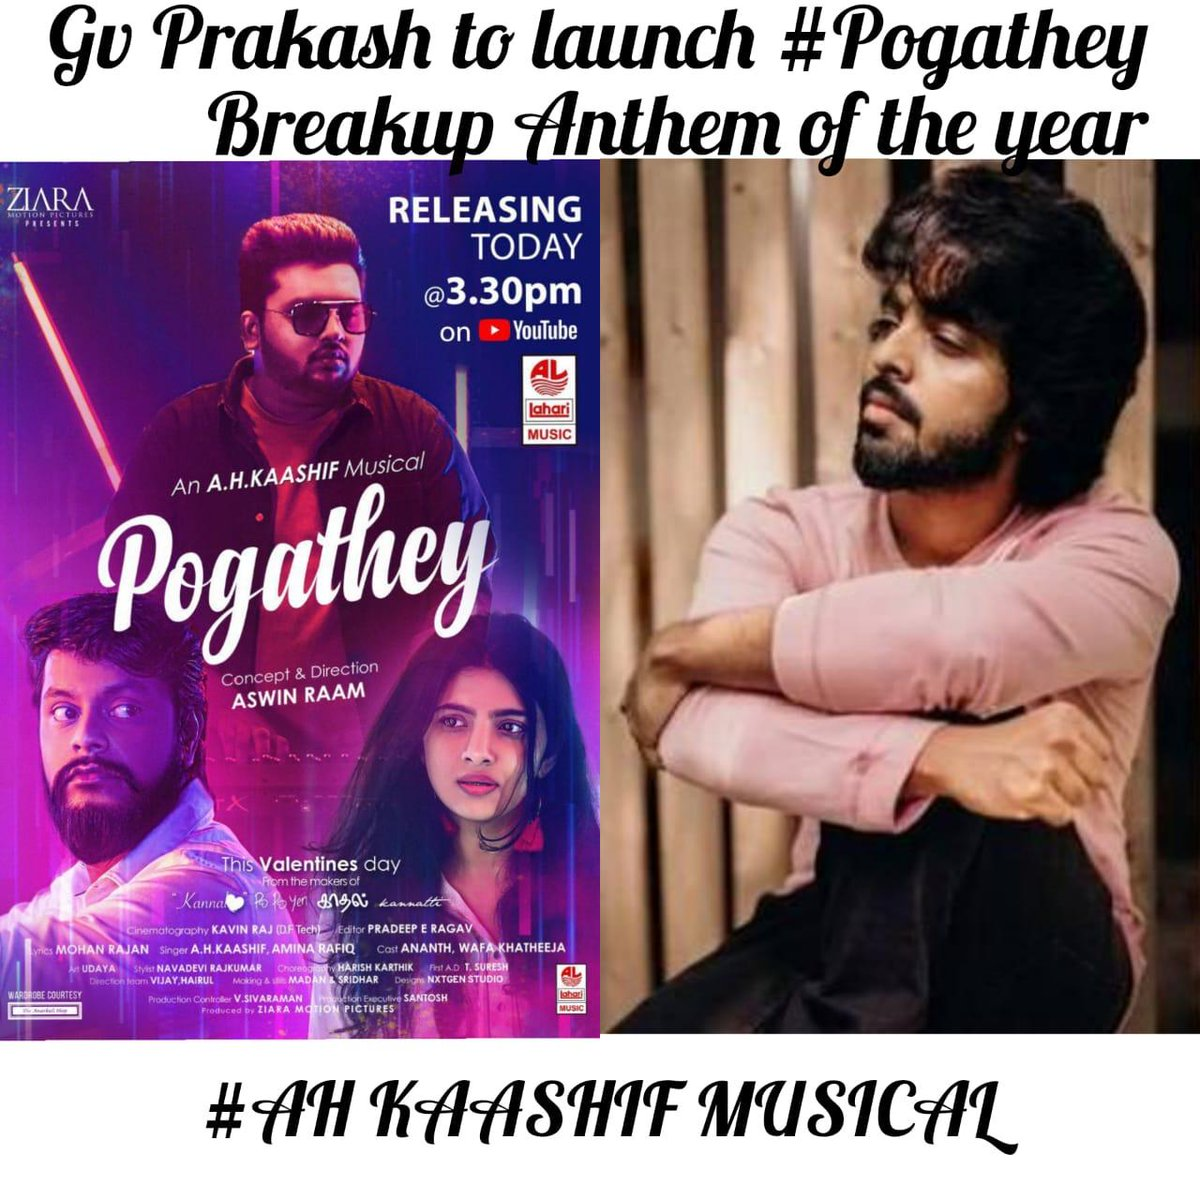 Here's the #Pogathey Break up anthem :     An #AHKaashif Musical, Concept and Direction by @dir_Aswin An @imkaashif Musical 🎵Cut by  @pradeeperagav ,shot by  @kavin_raj15 , Ft. Meesayamuruku fame @ActorAnanth . Exclusive on @LahariMusic